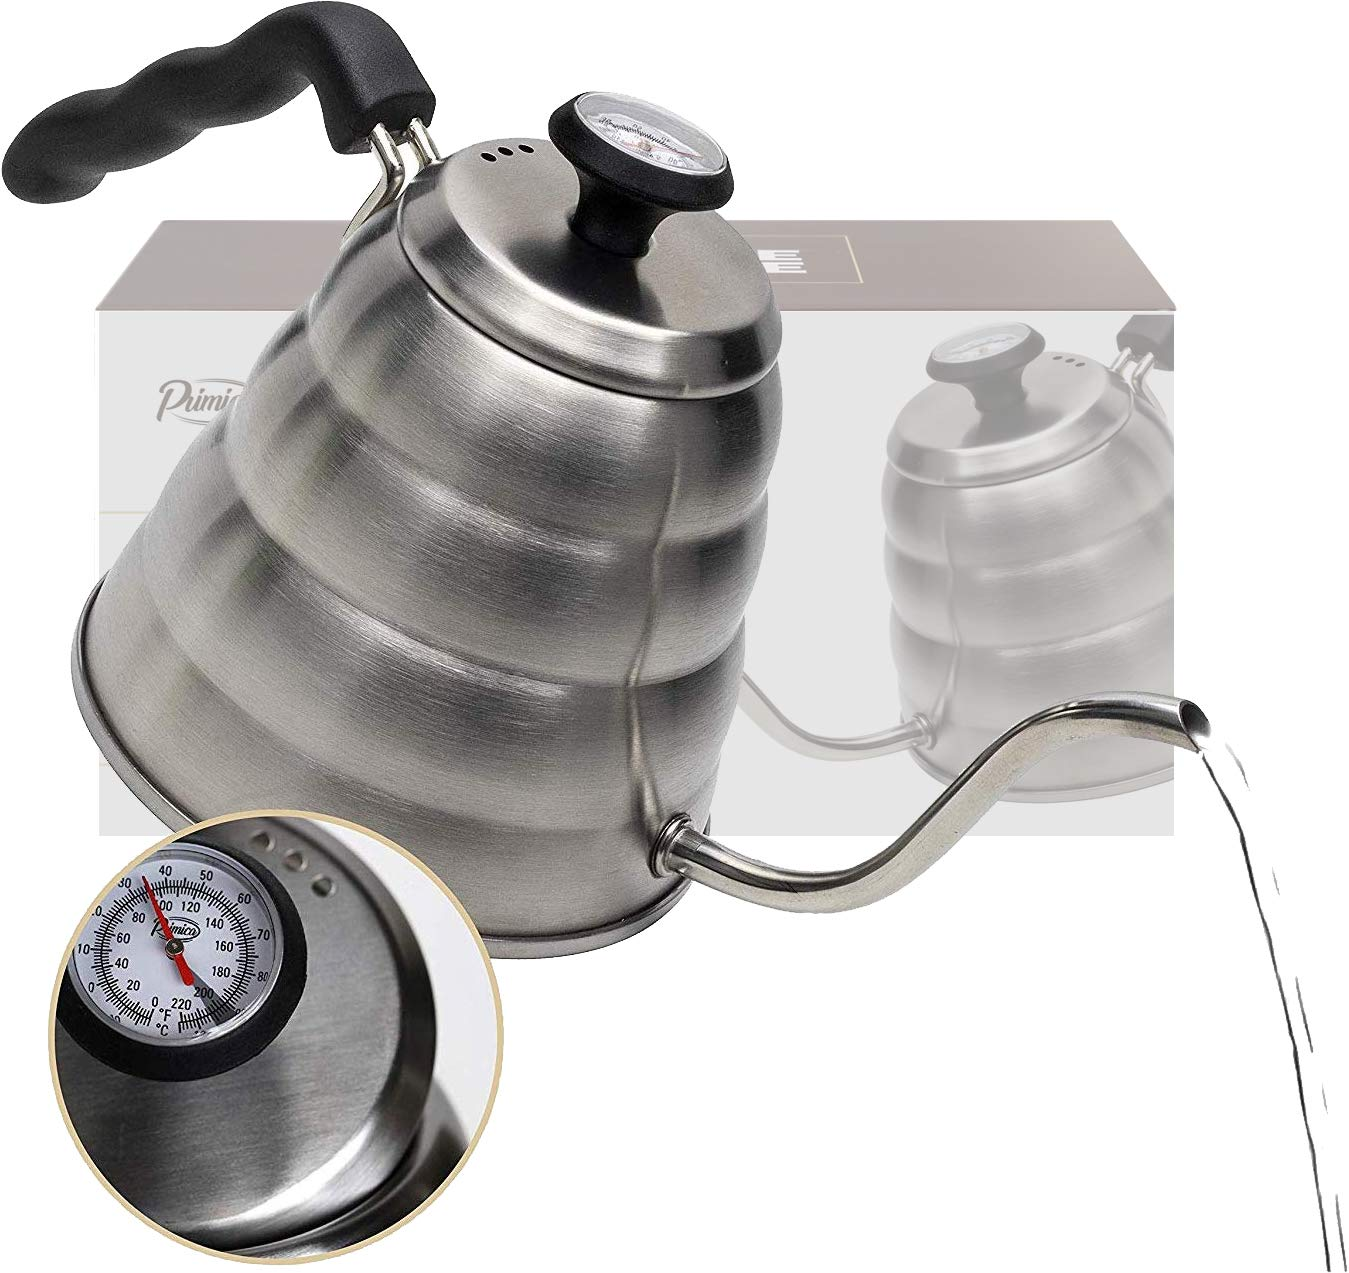 Pour Over Coffee Kettle with Outstanding Thermometer (40floz) - Gooseneck Kettle - Triple Layer Stainless Steel Bottom Works on any Heat Source for Drip Coffee and Tea by Primica (Image #1)